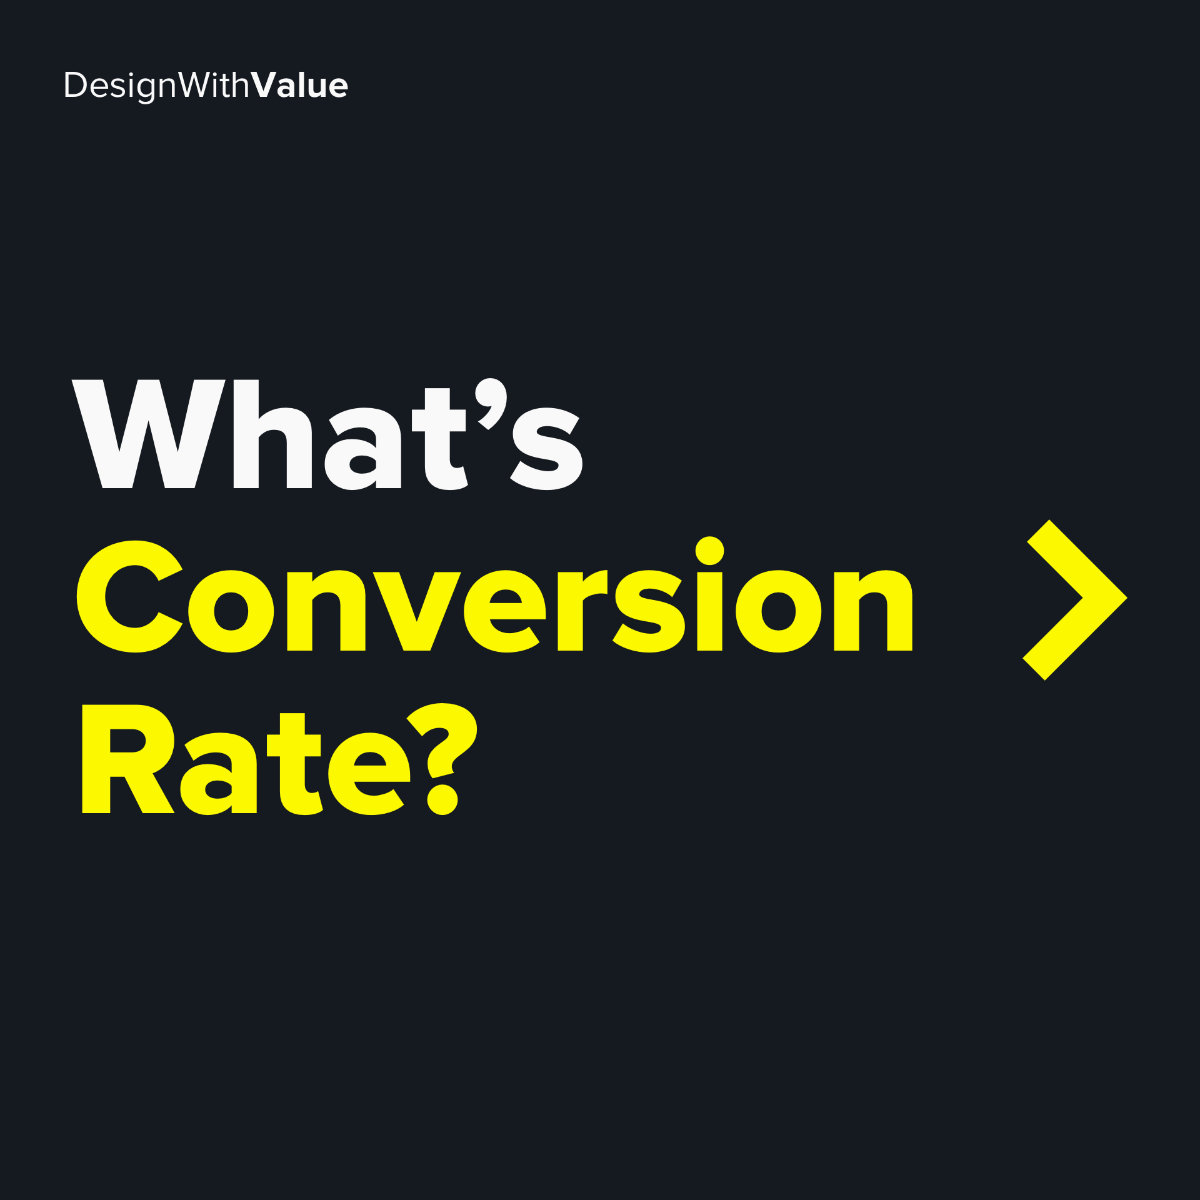 What's conversion rate?